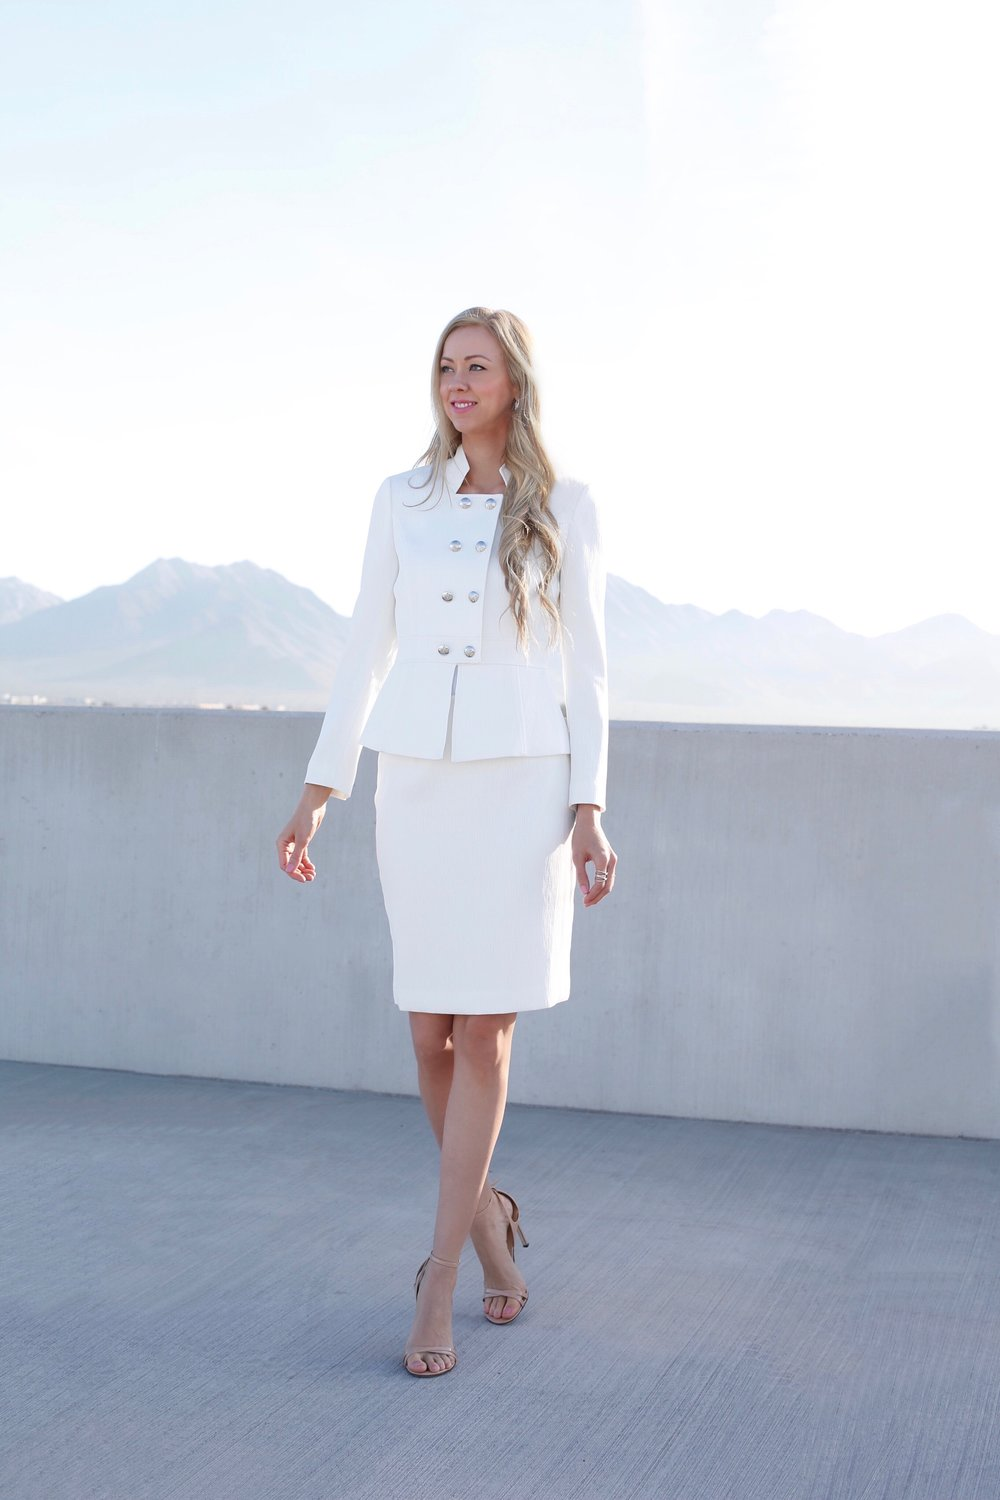 Tahari-Asl-white-skirt-suit-dillards-macys-lord-and-taylor.jpg